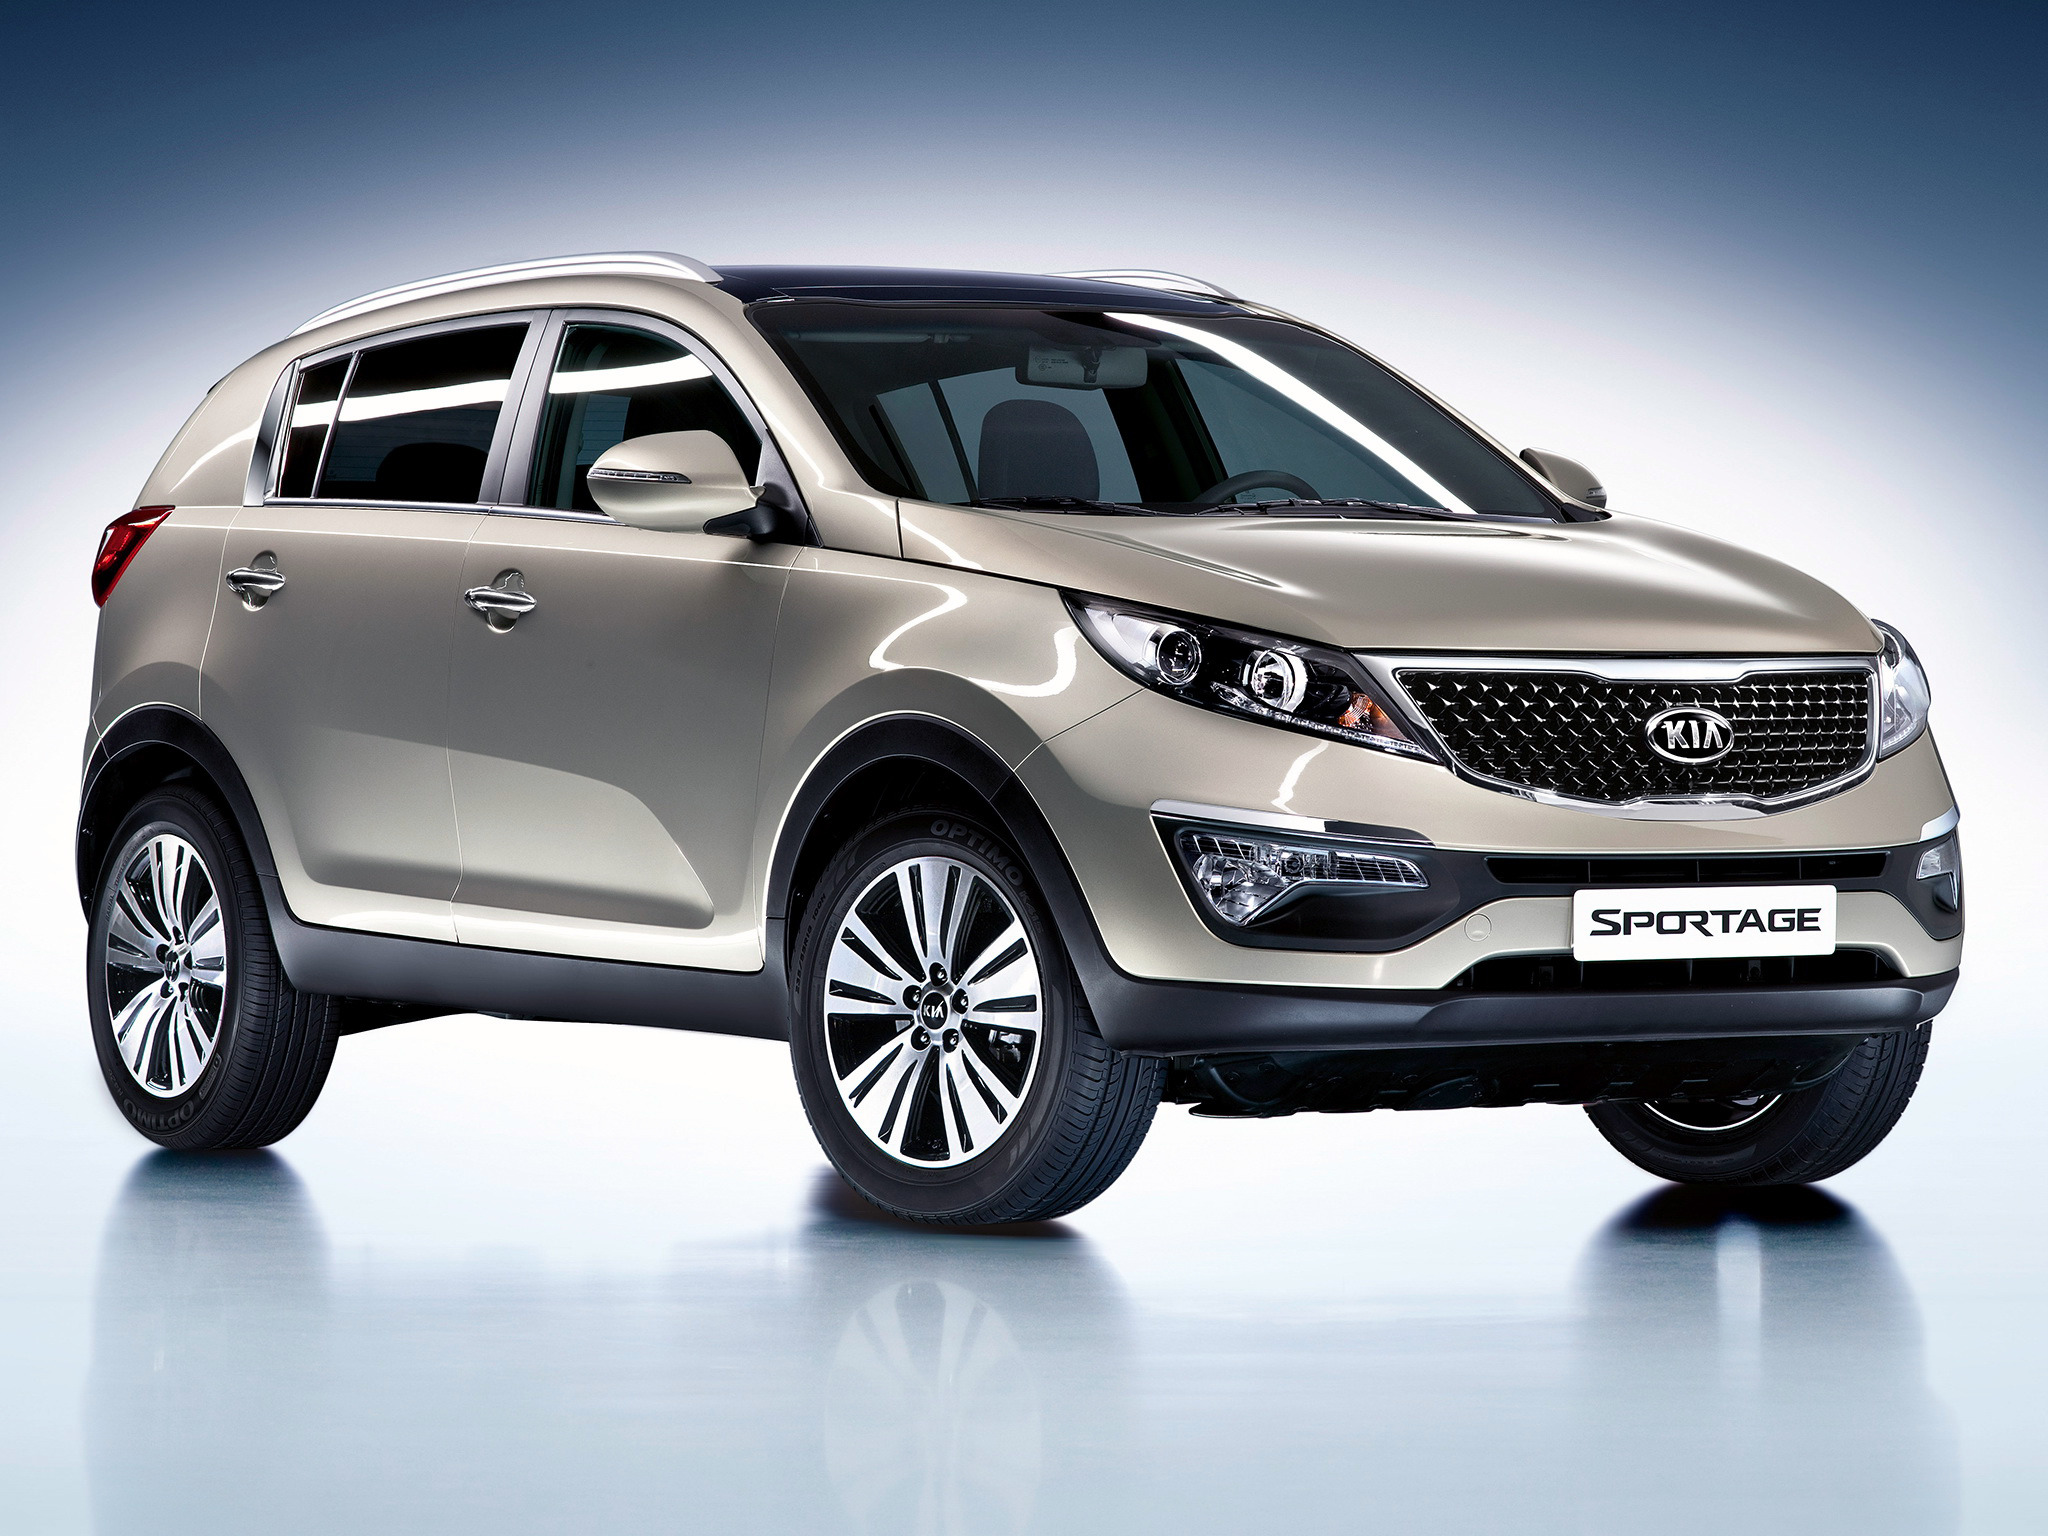 2014 kia sportage review caradvice autos post. Black Bedroom Furniture Sets. Home Design Ideas